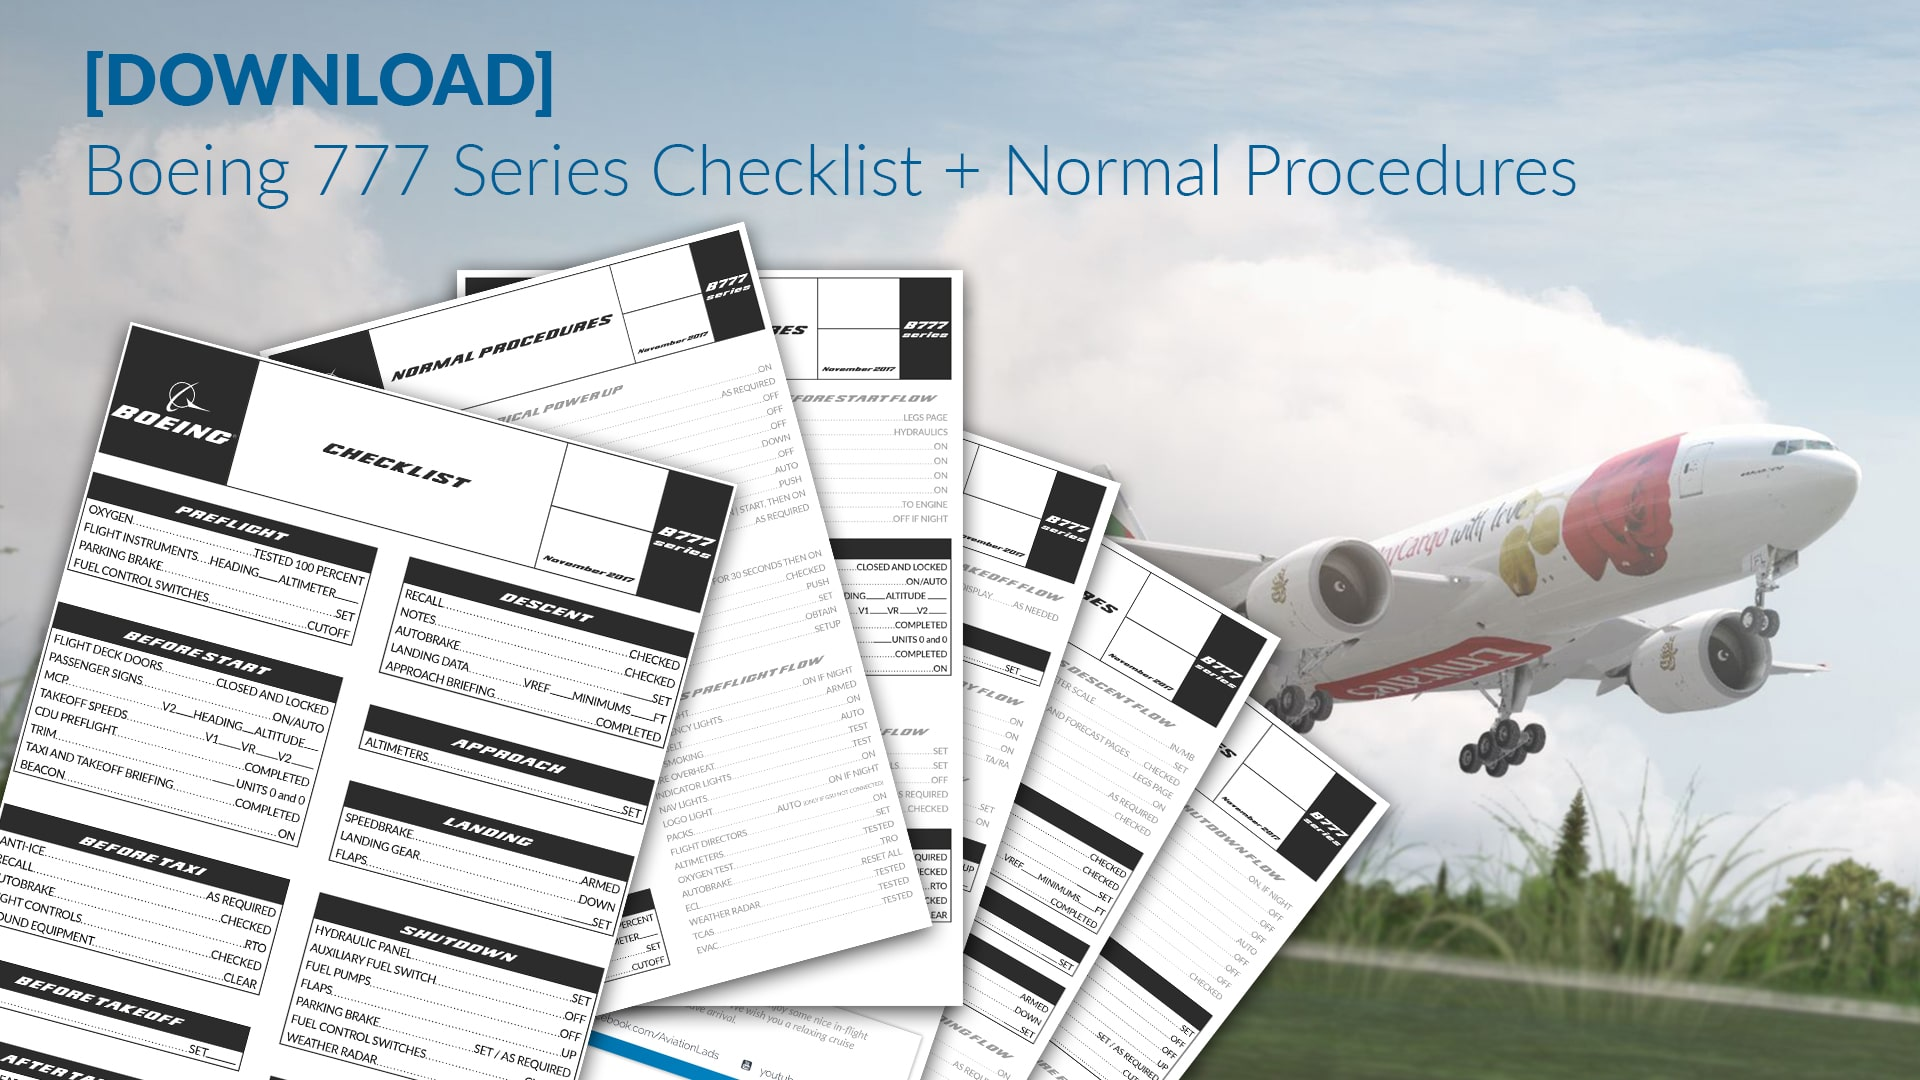 DOWNLOAD] Boeing 777 Series Checklist - Normal Procedures